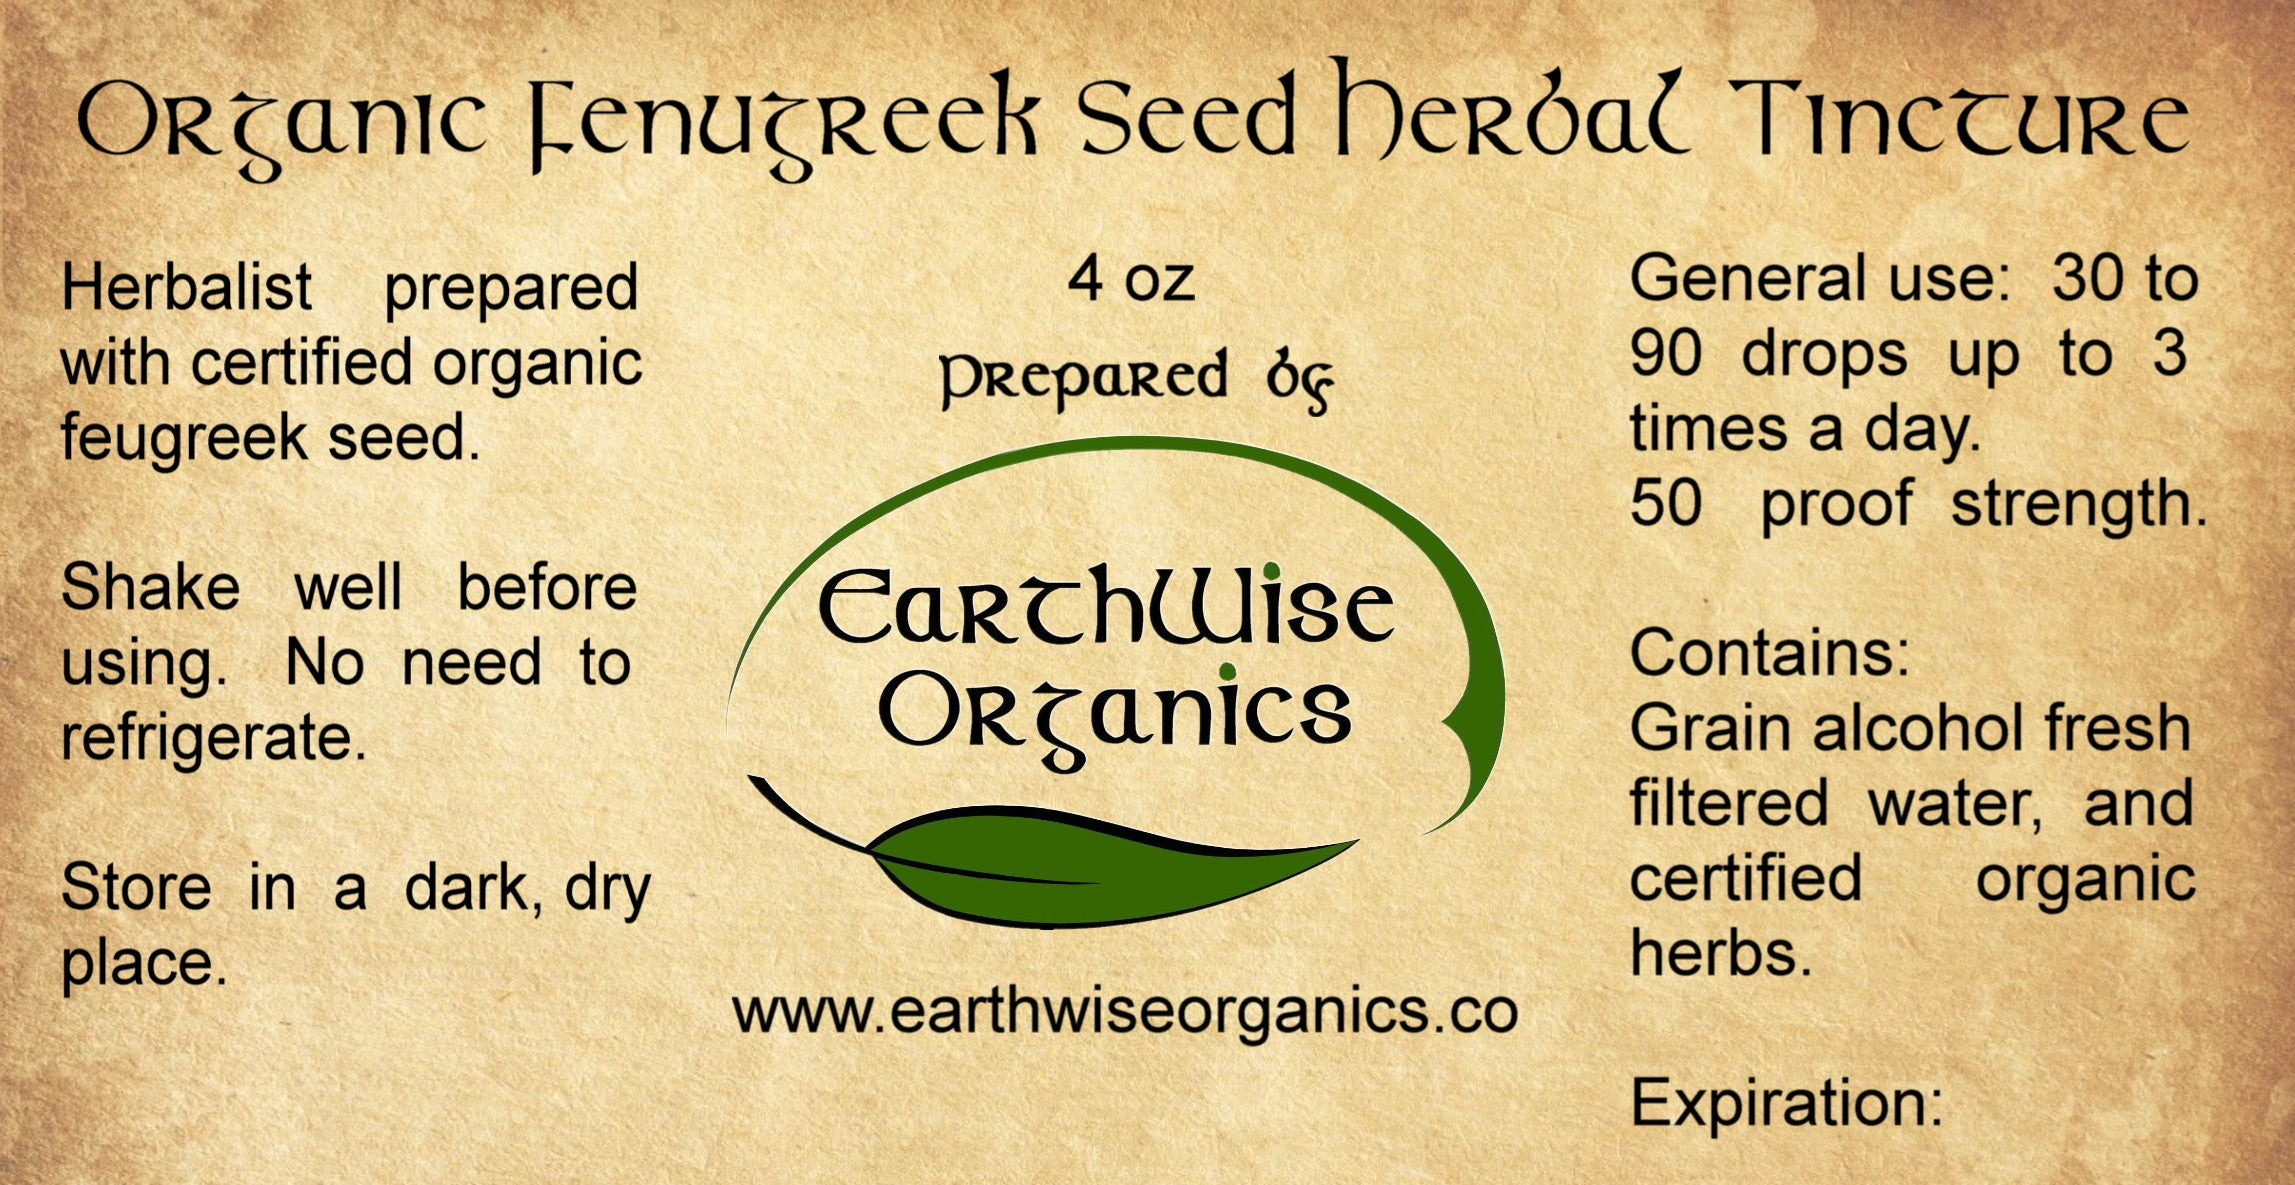 fenugreek organic herbal tincture label